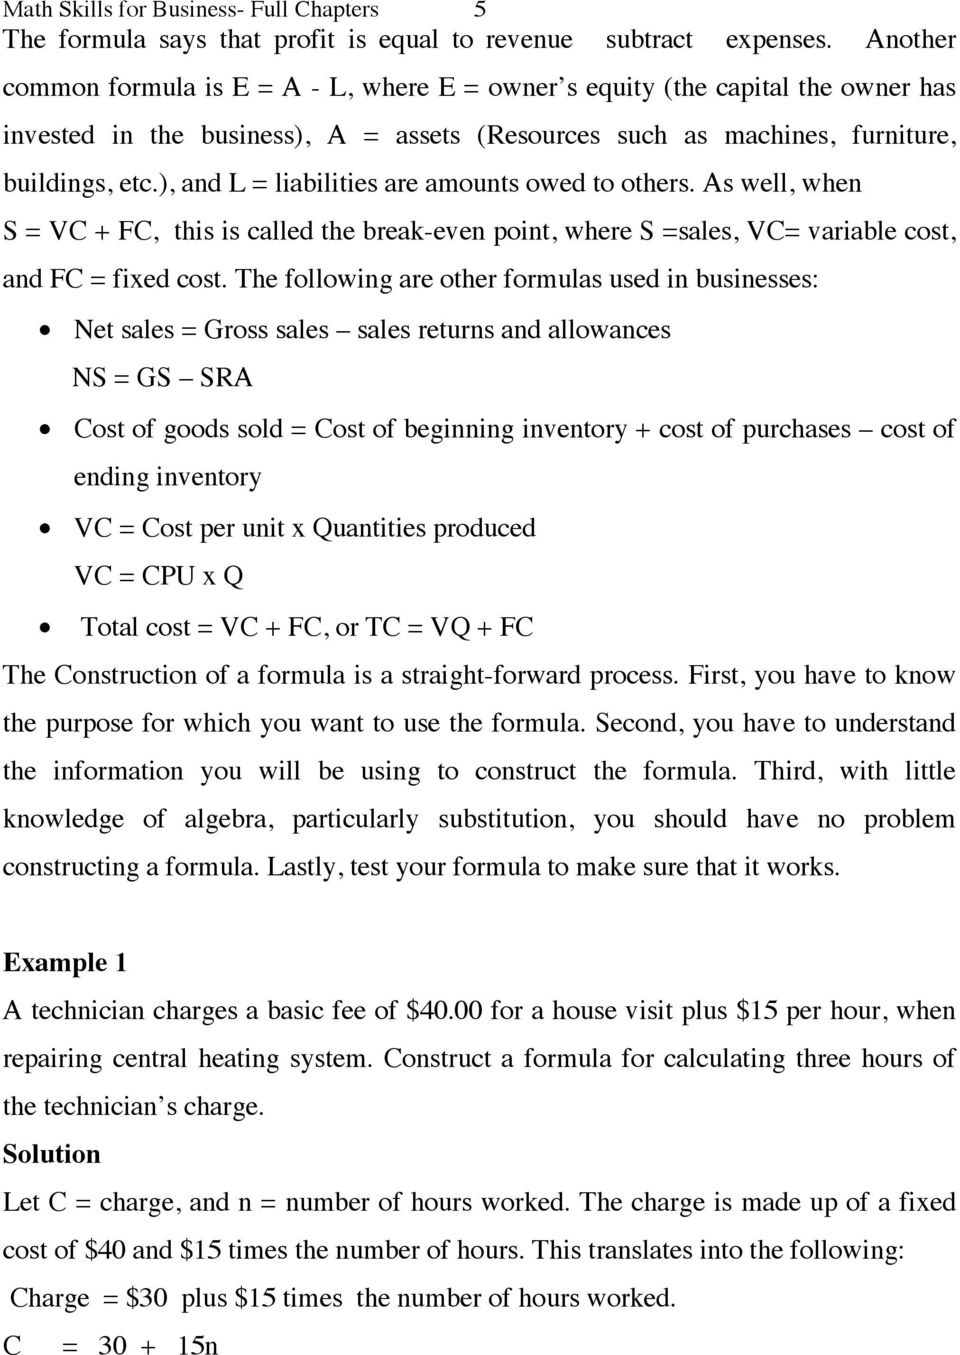 ), and L = liabilities are amounts owed to others. As well, when S = VC + FC, this is called the break-even point, where S =sales, VC= variable cost, and FC = fixed cost.